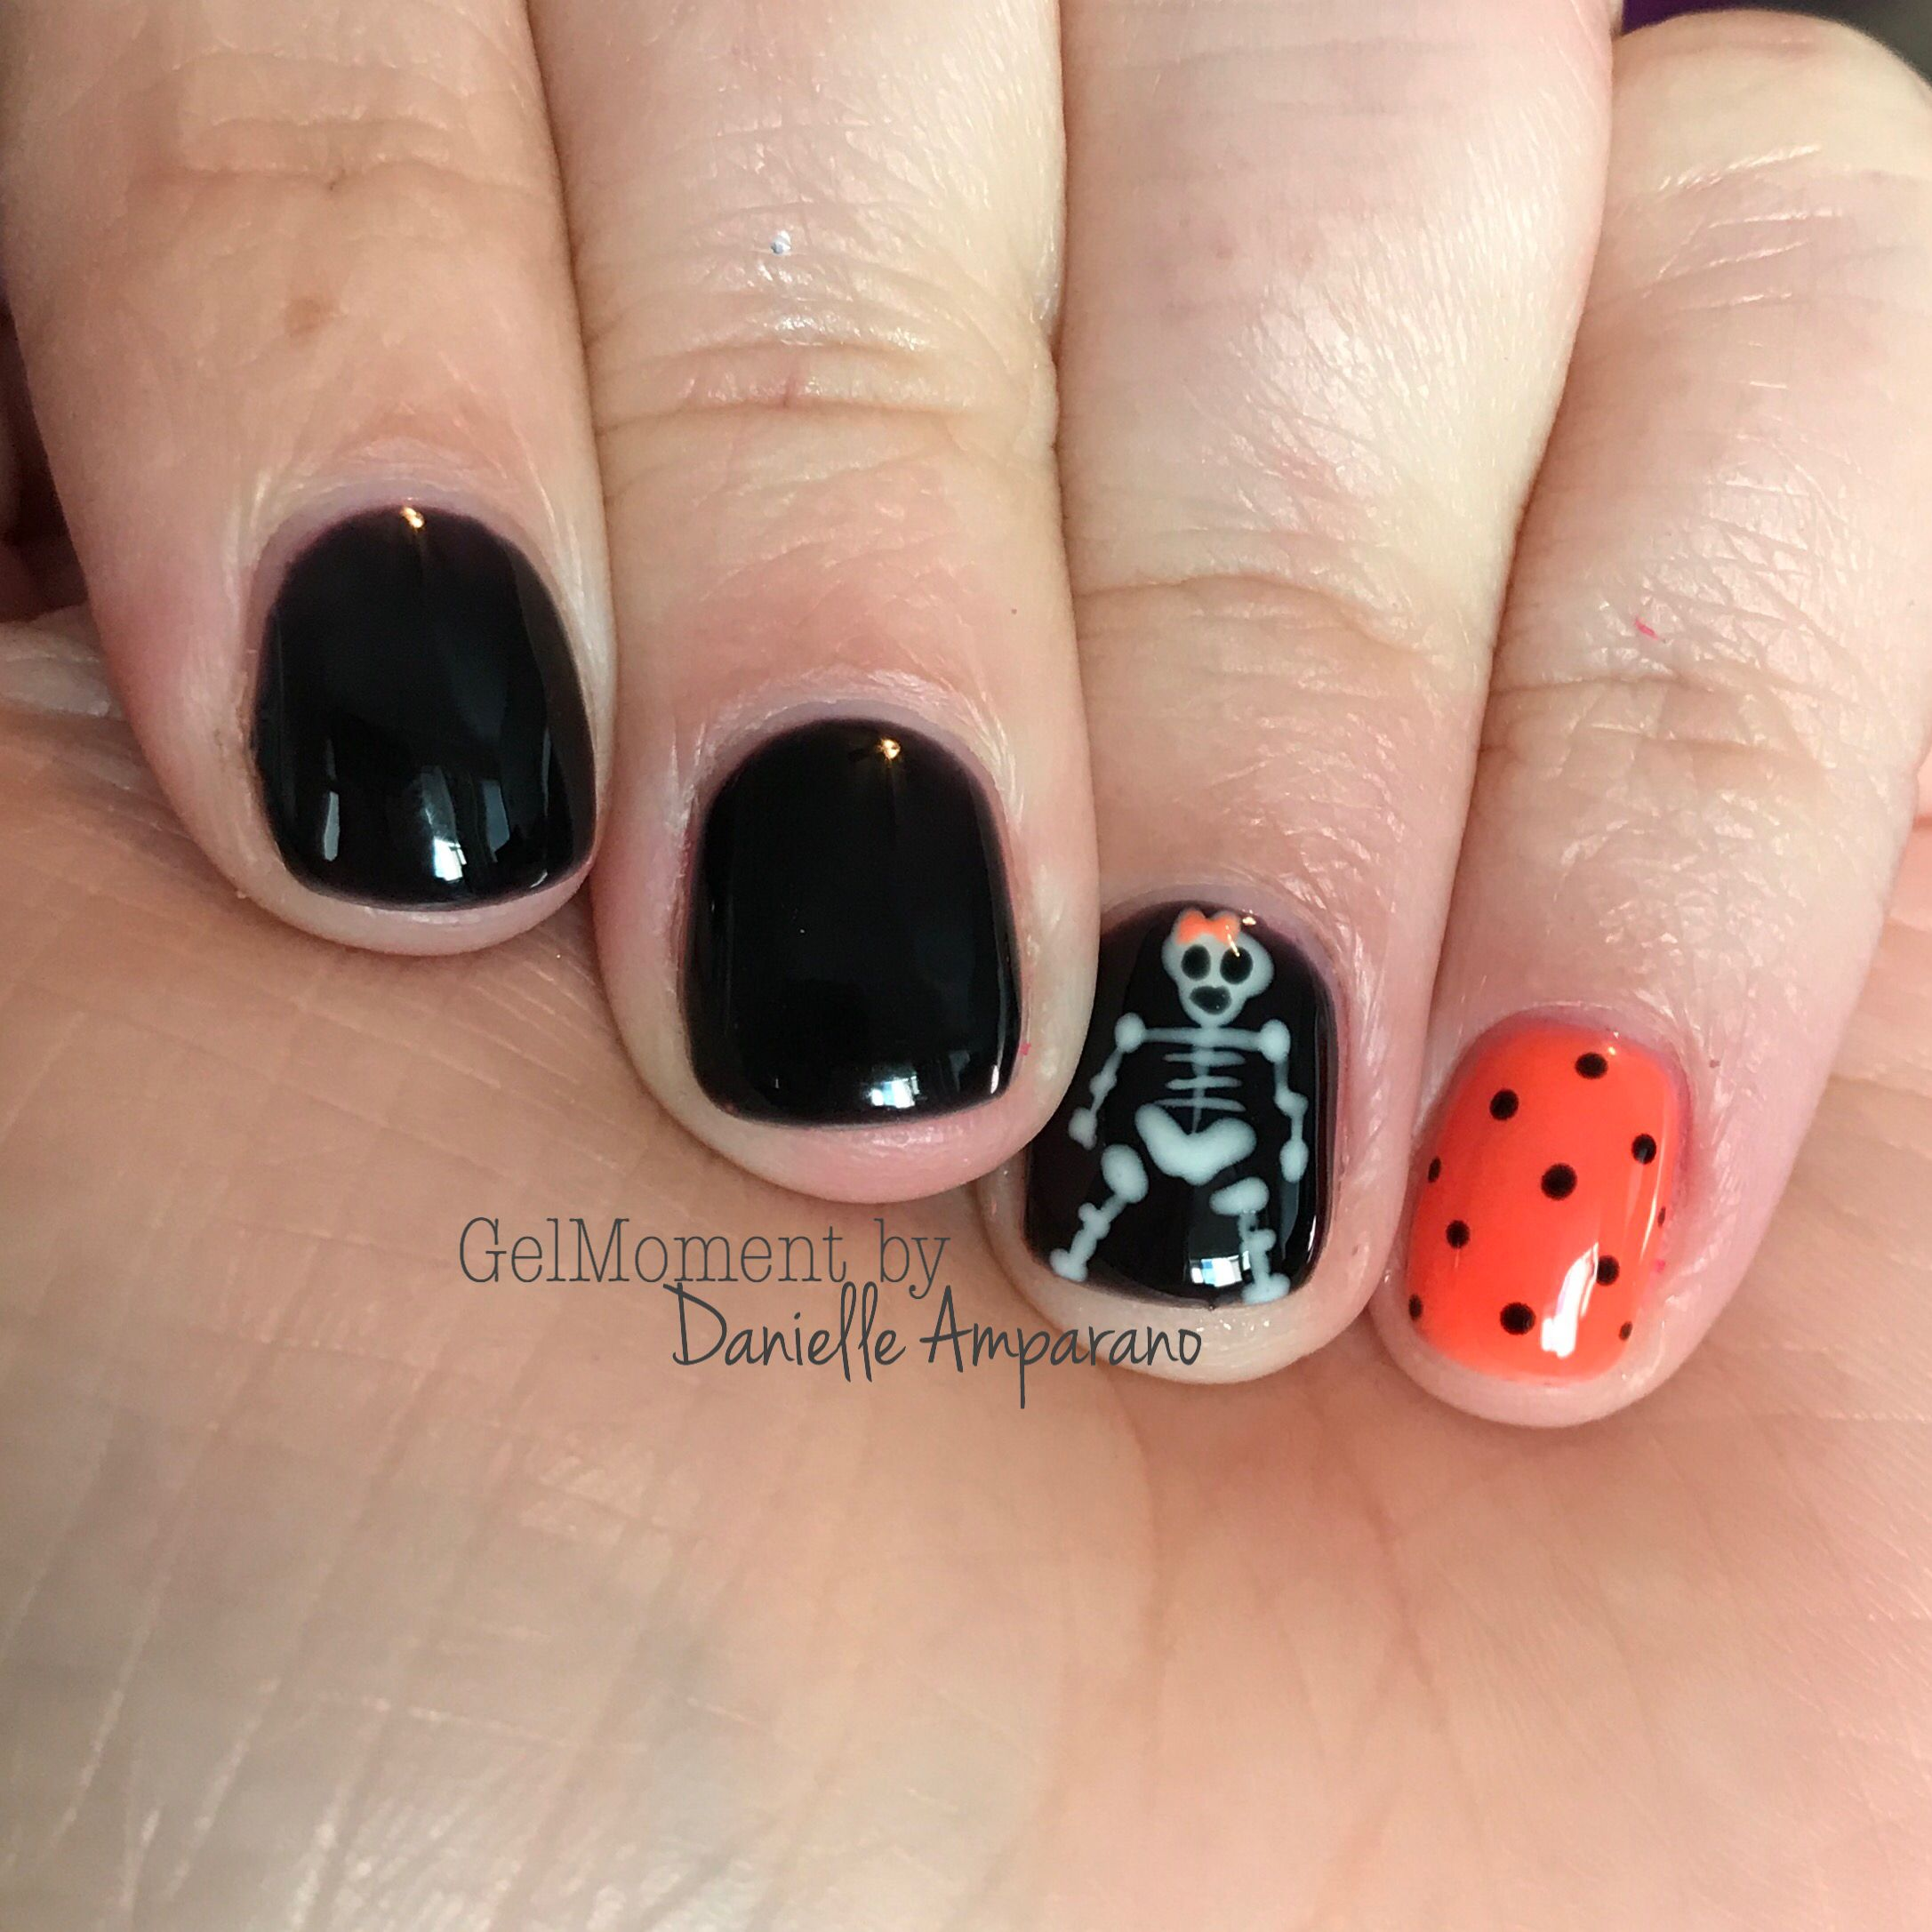 Halloween Skeleton Nail Art Done Using Gelmoment Non Toxic 1 Step Gel Polish That Lasts Up To 14 Days It S 5 Free Manicure And Pedicure Manicure Gel Polish